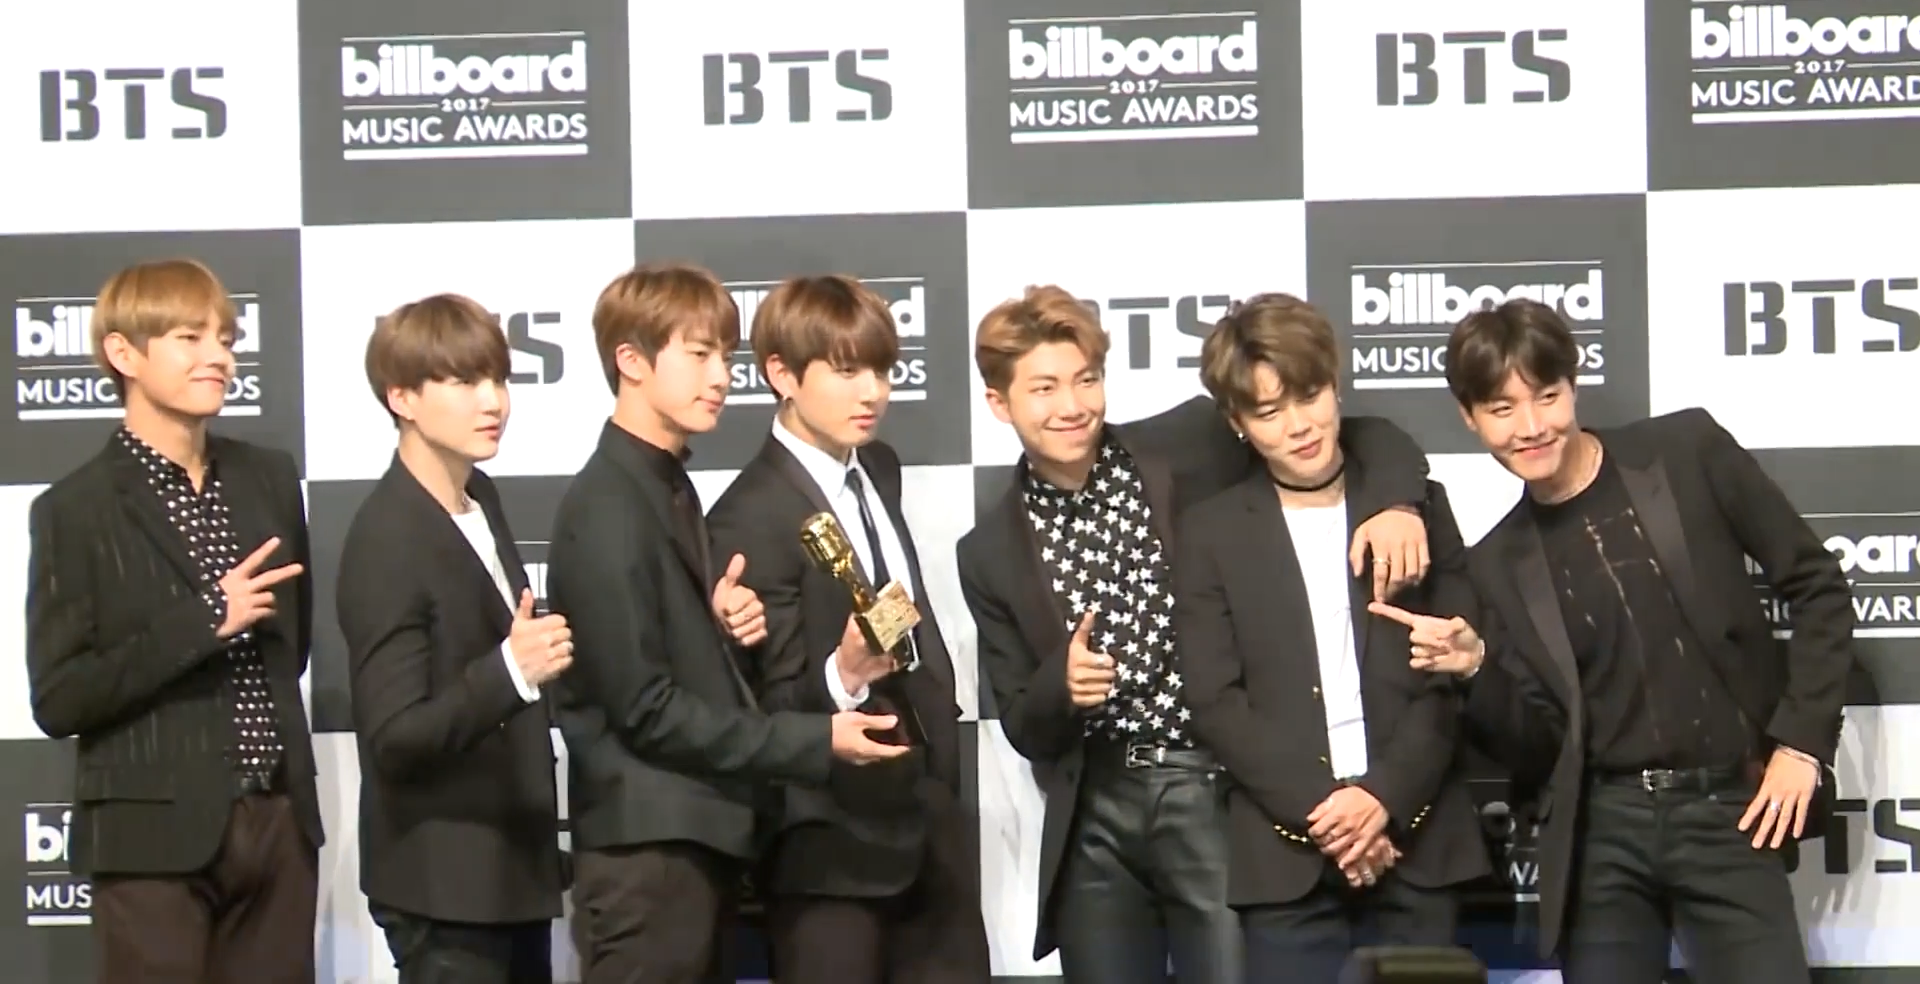 File:170529 BTS at a press conference for the BBMAs (2).png.